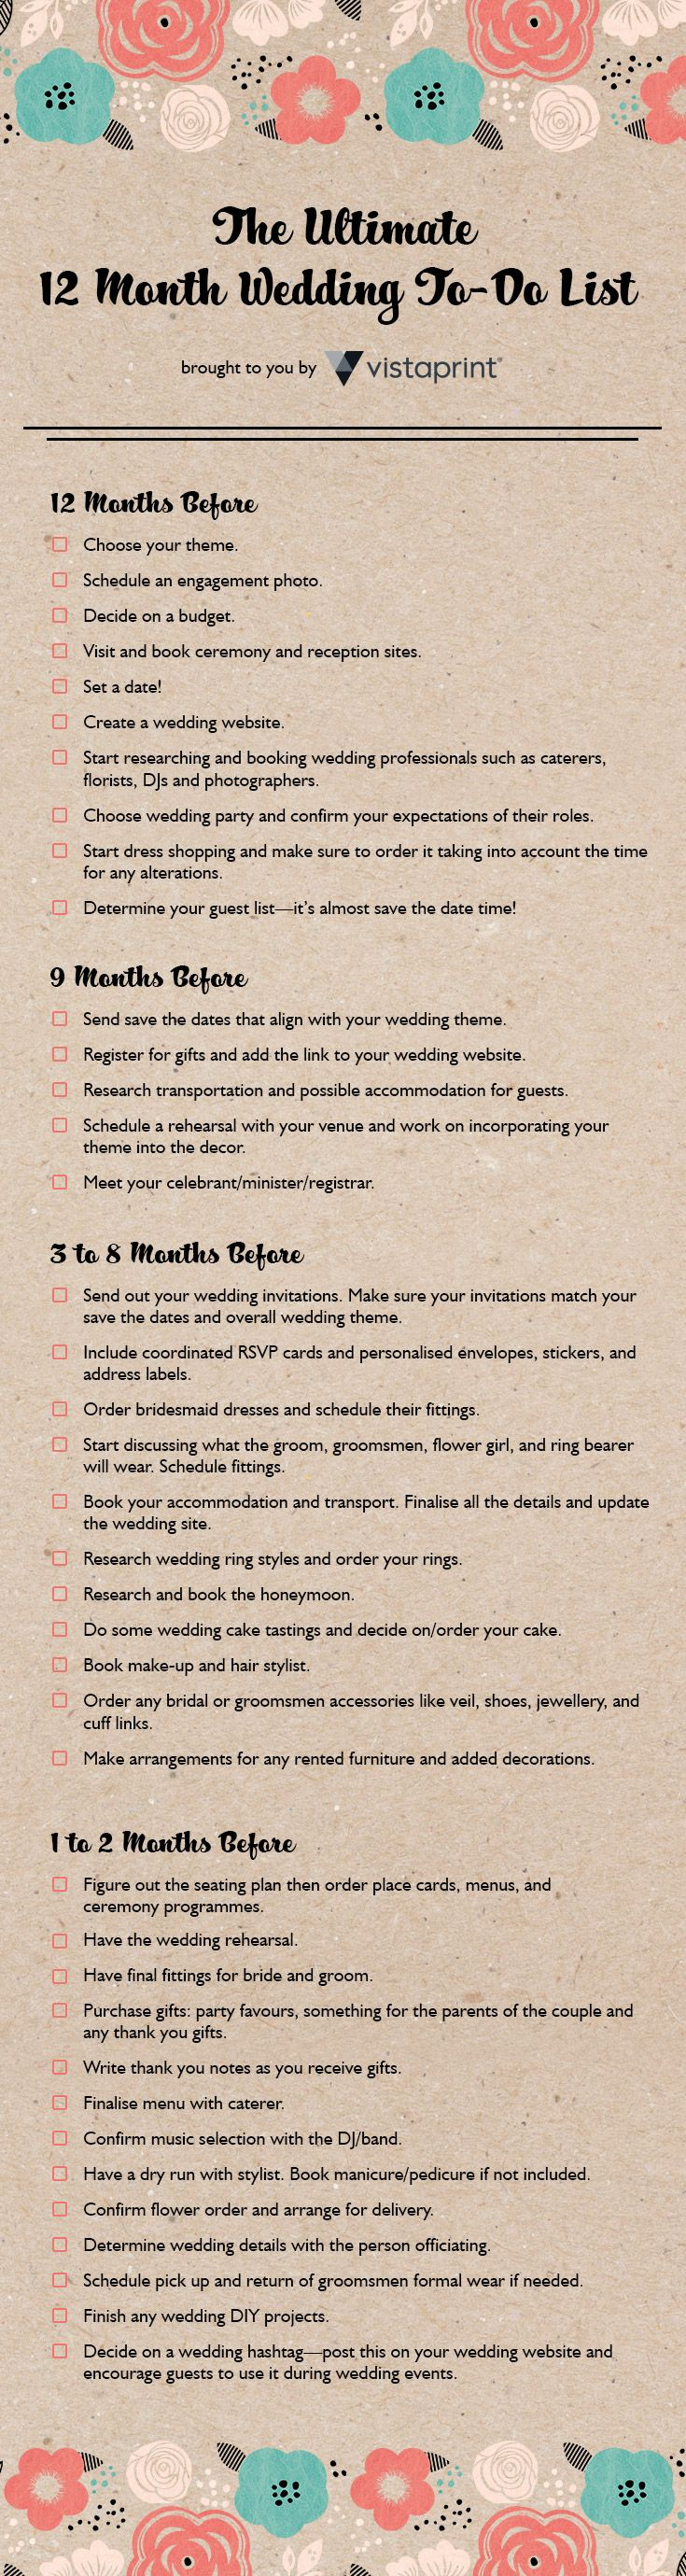 This is so helpful - VistaPrint's wedding planning checklist.